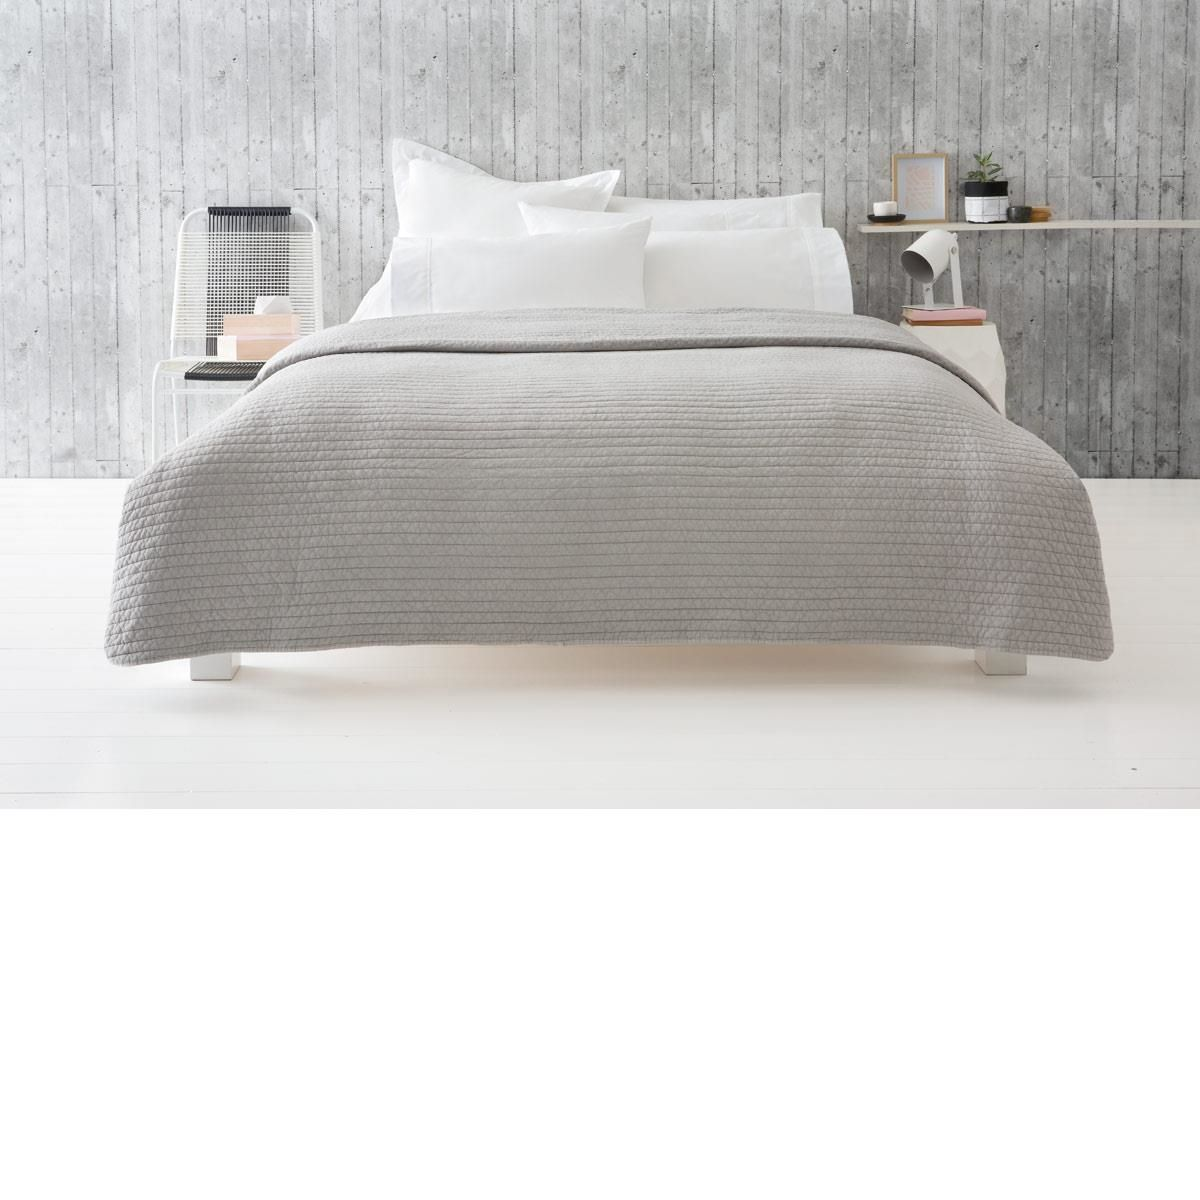 curtis coverlet queen bedking bed grey kmart - Bed Frames Kmart